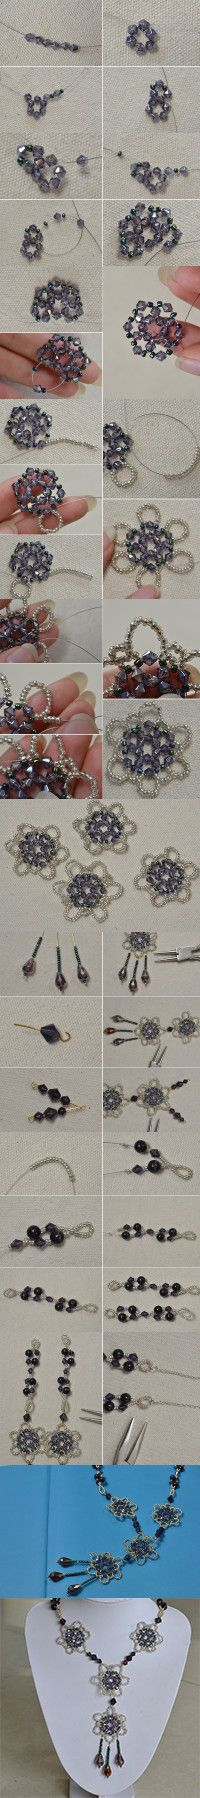 A Unique Design on How to Make a Big Purple Beaded Flower Pendent Necklace from LC.Pandahall.com    #pandahall